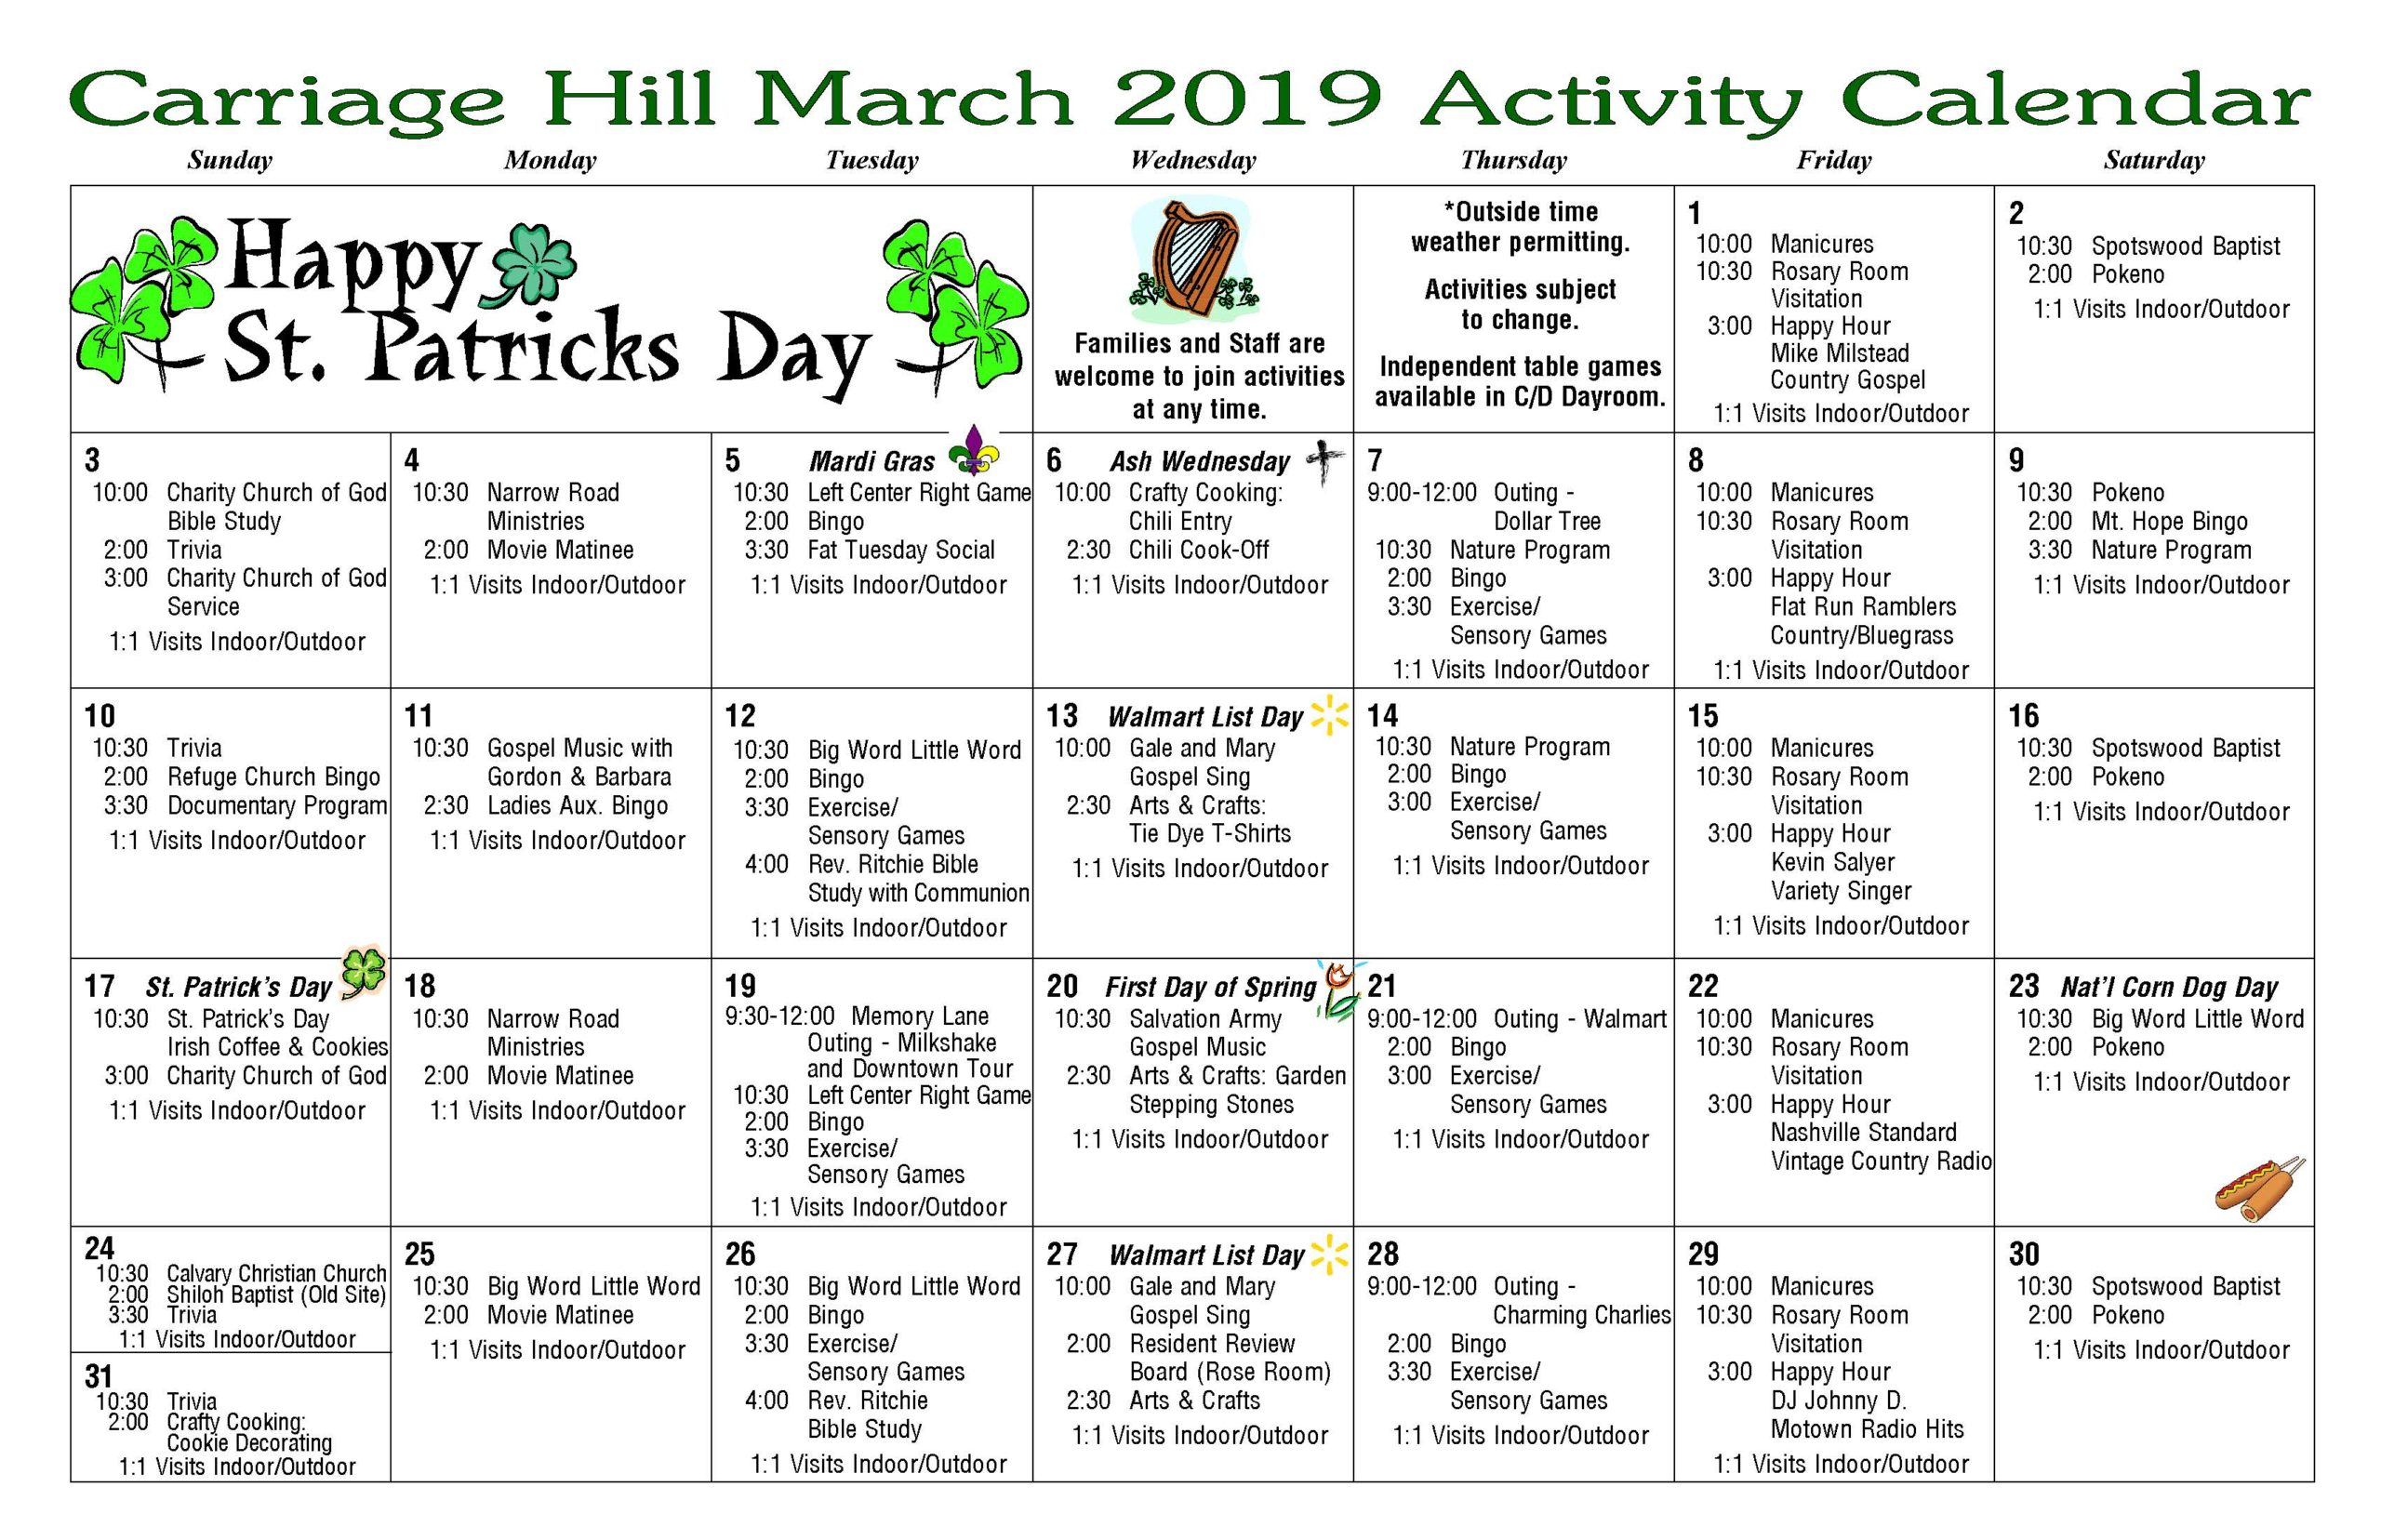 March 2019 Activities Calendar Carriage Hill Health